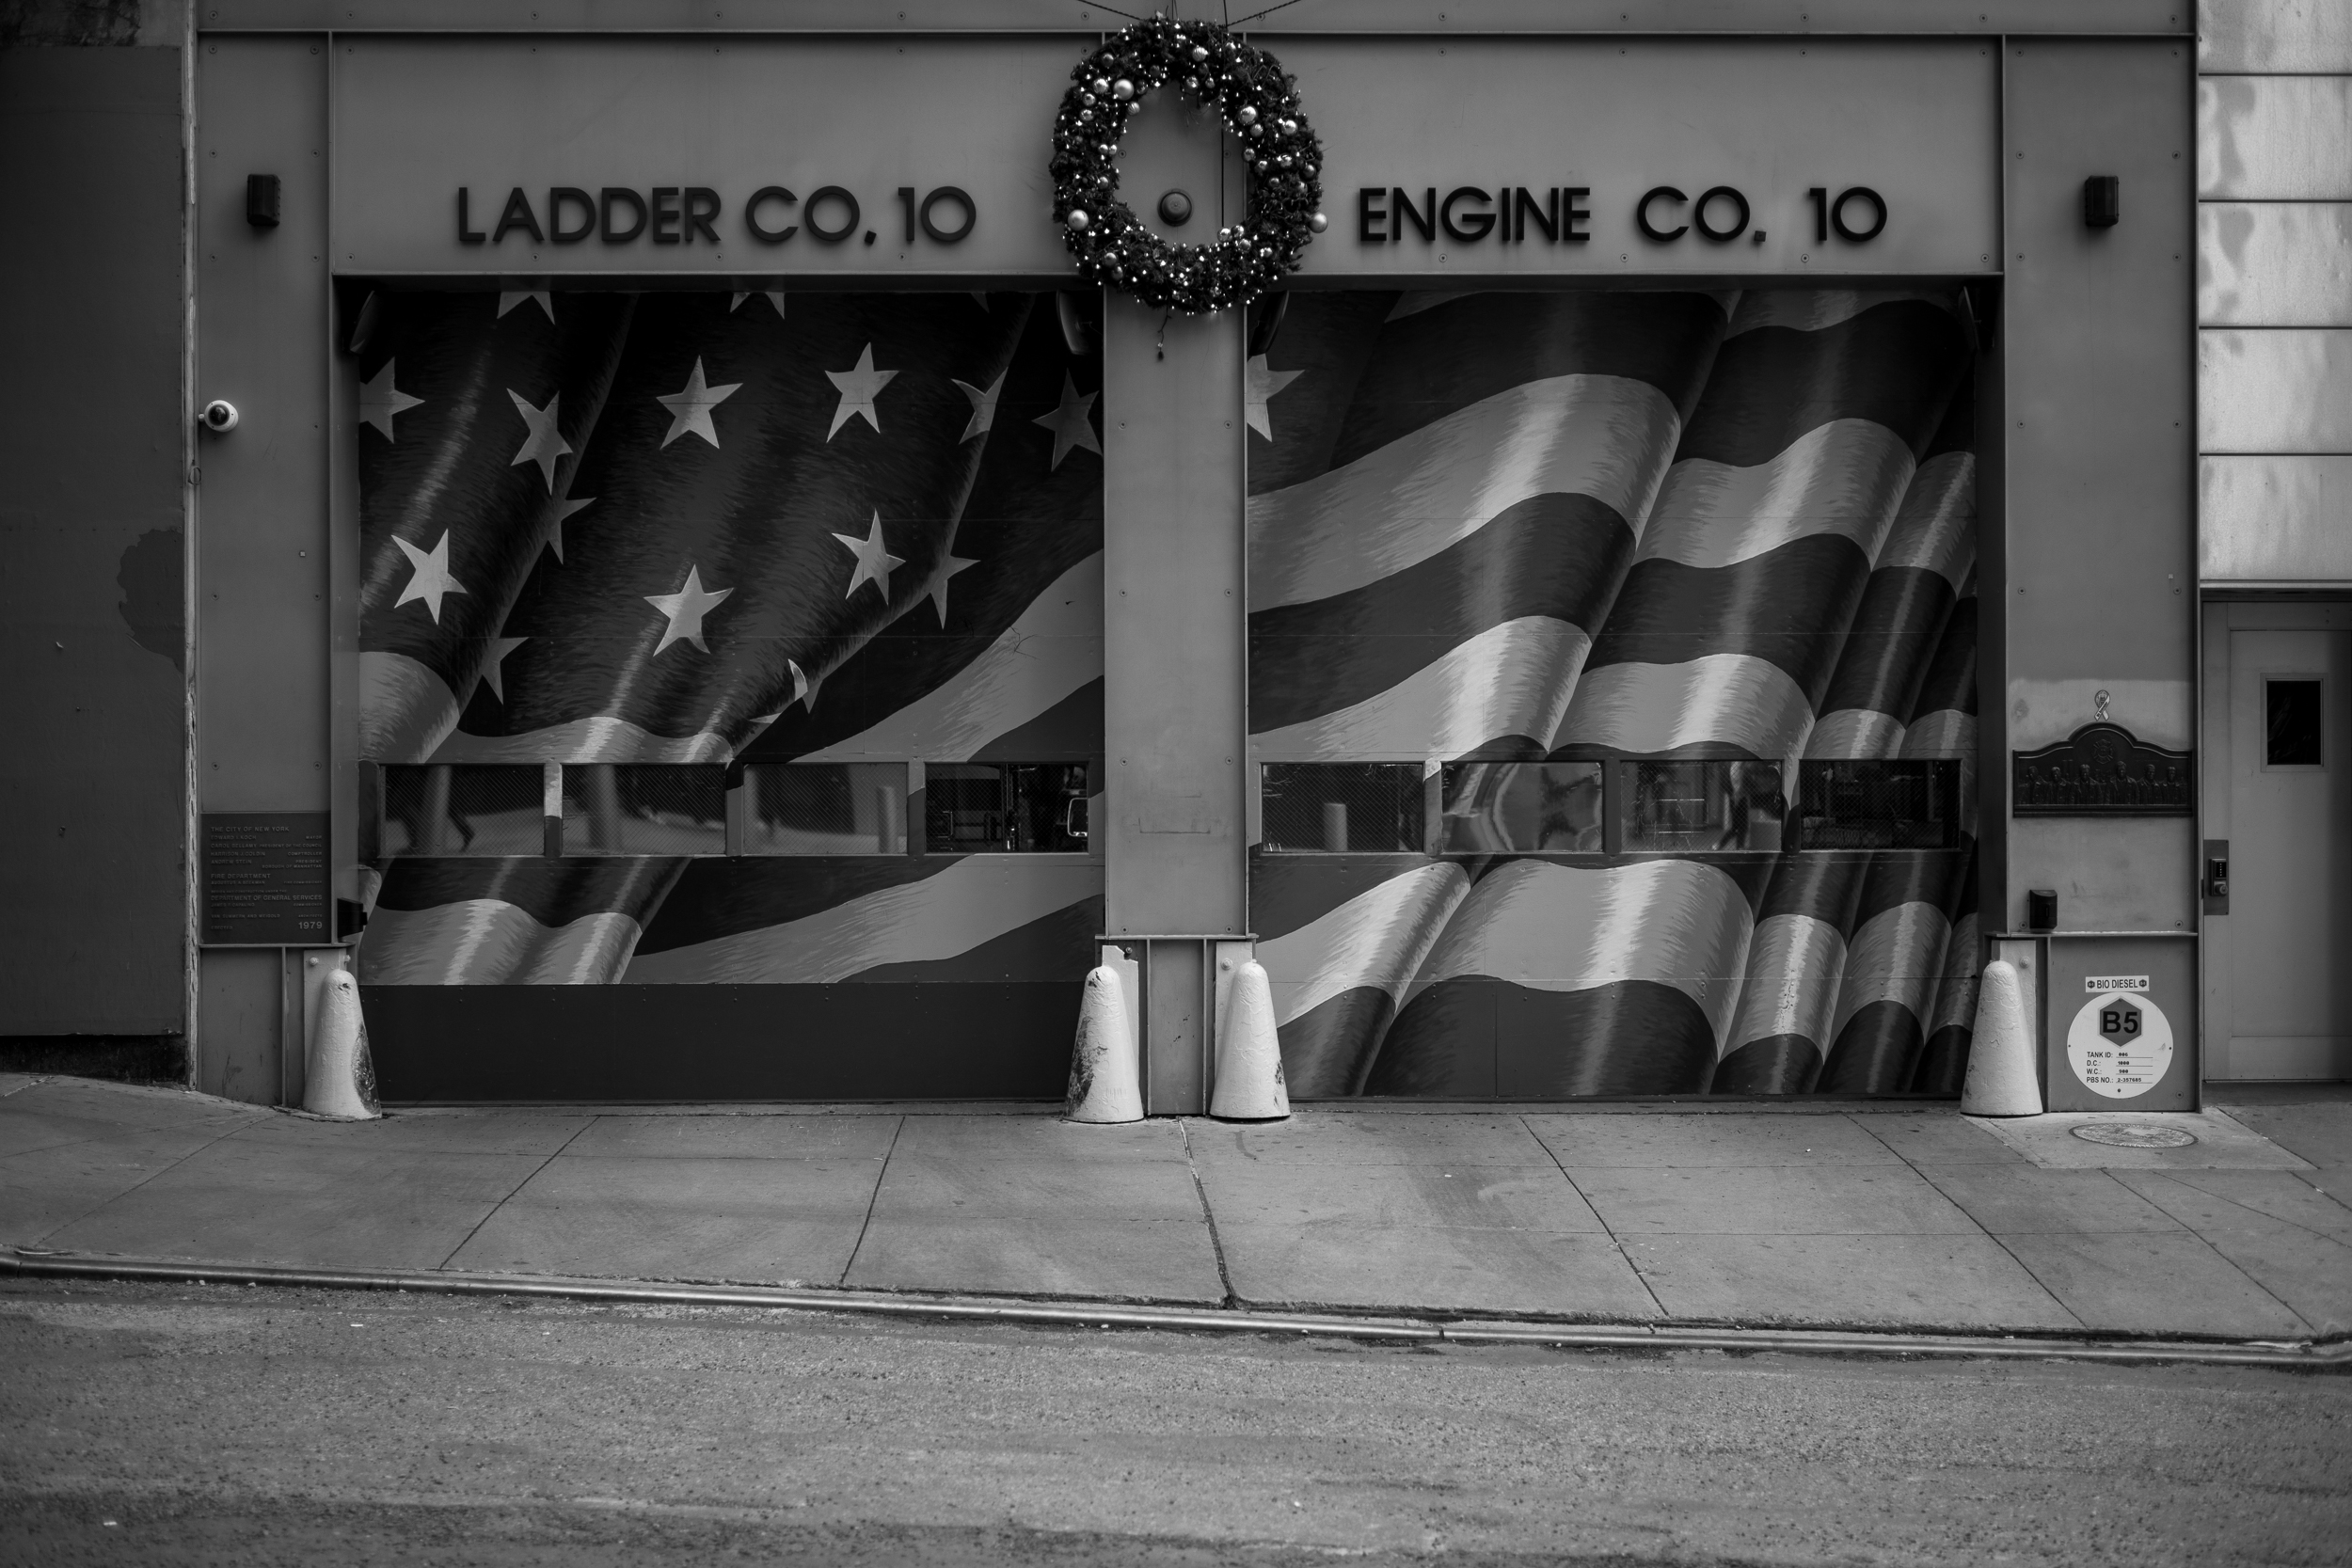 Less than a block from the World Trade Center is a fire station home to ladder company 10. Six fireman from this company died rescuing others on 9/11.